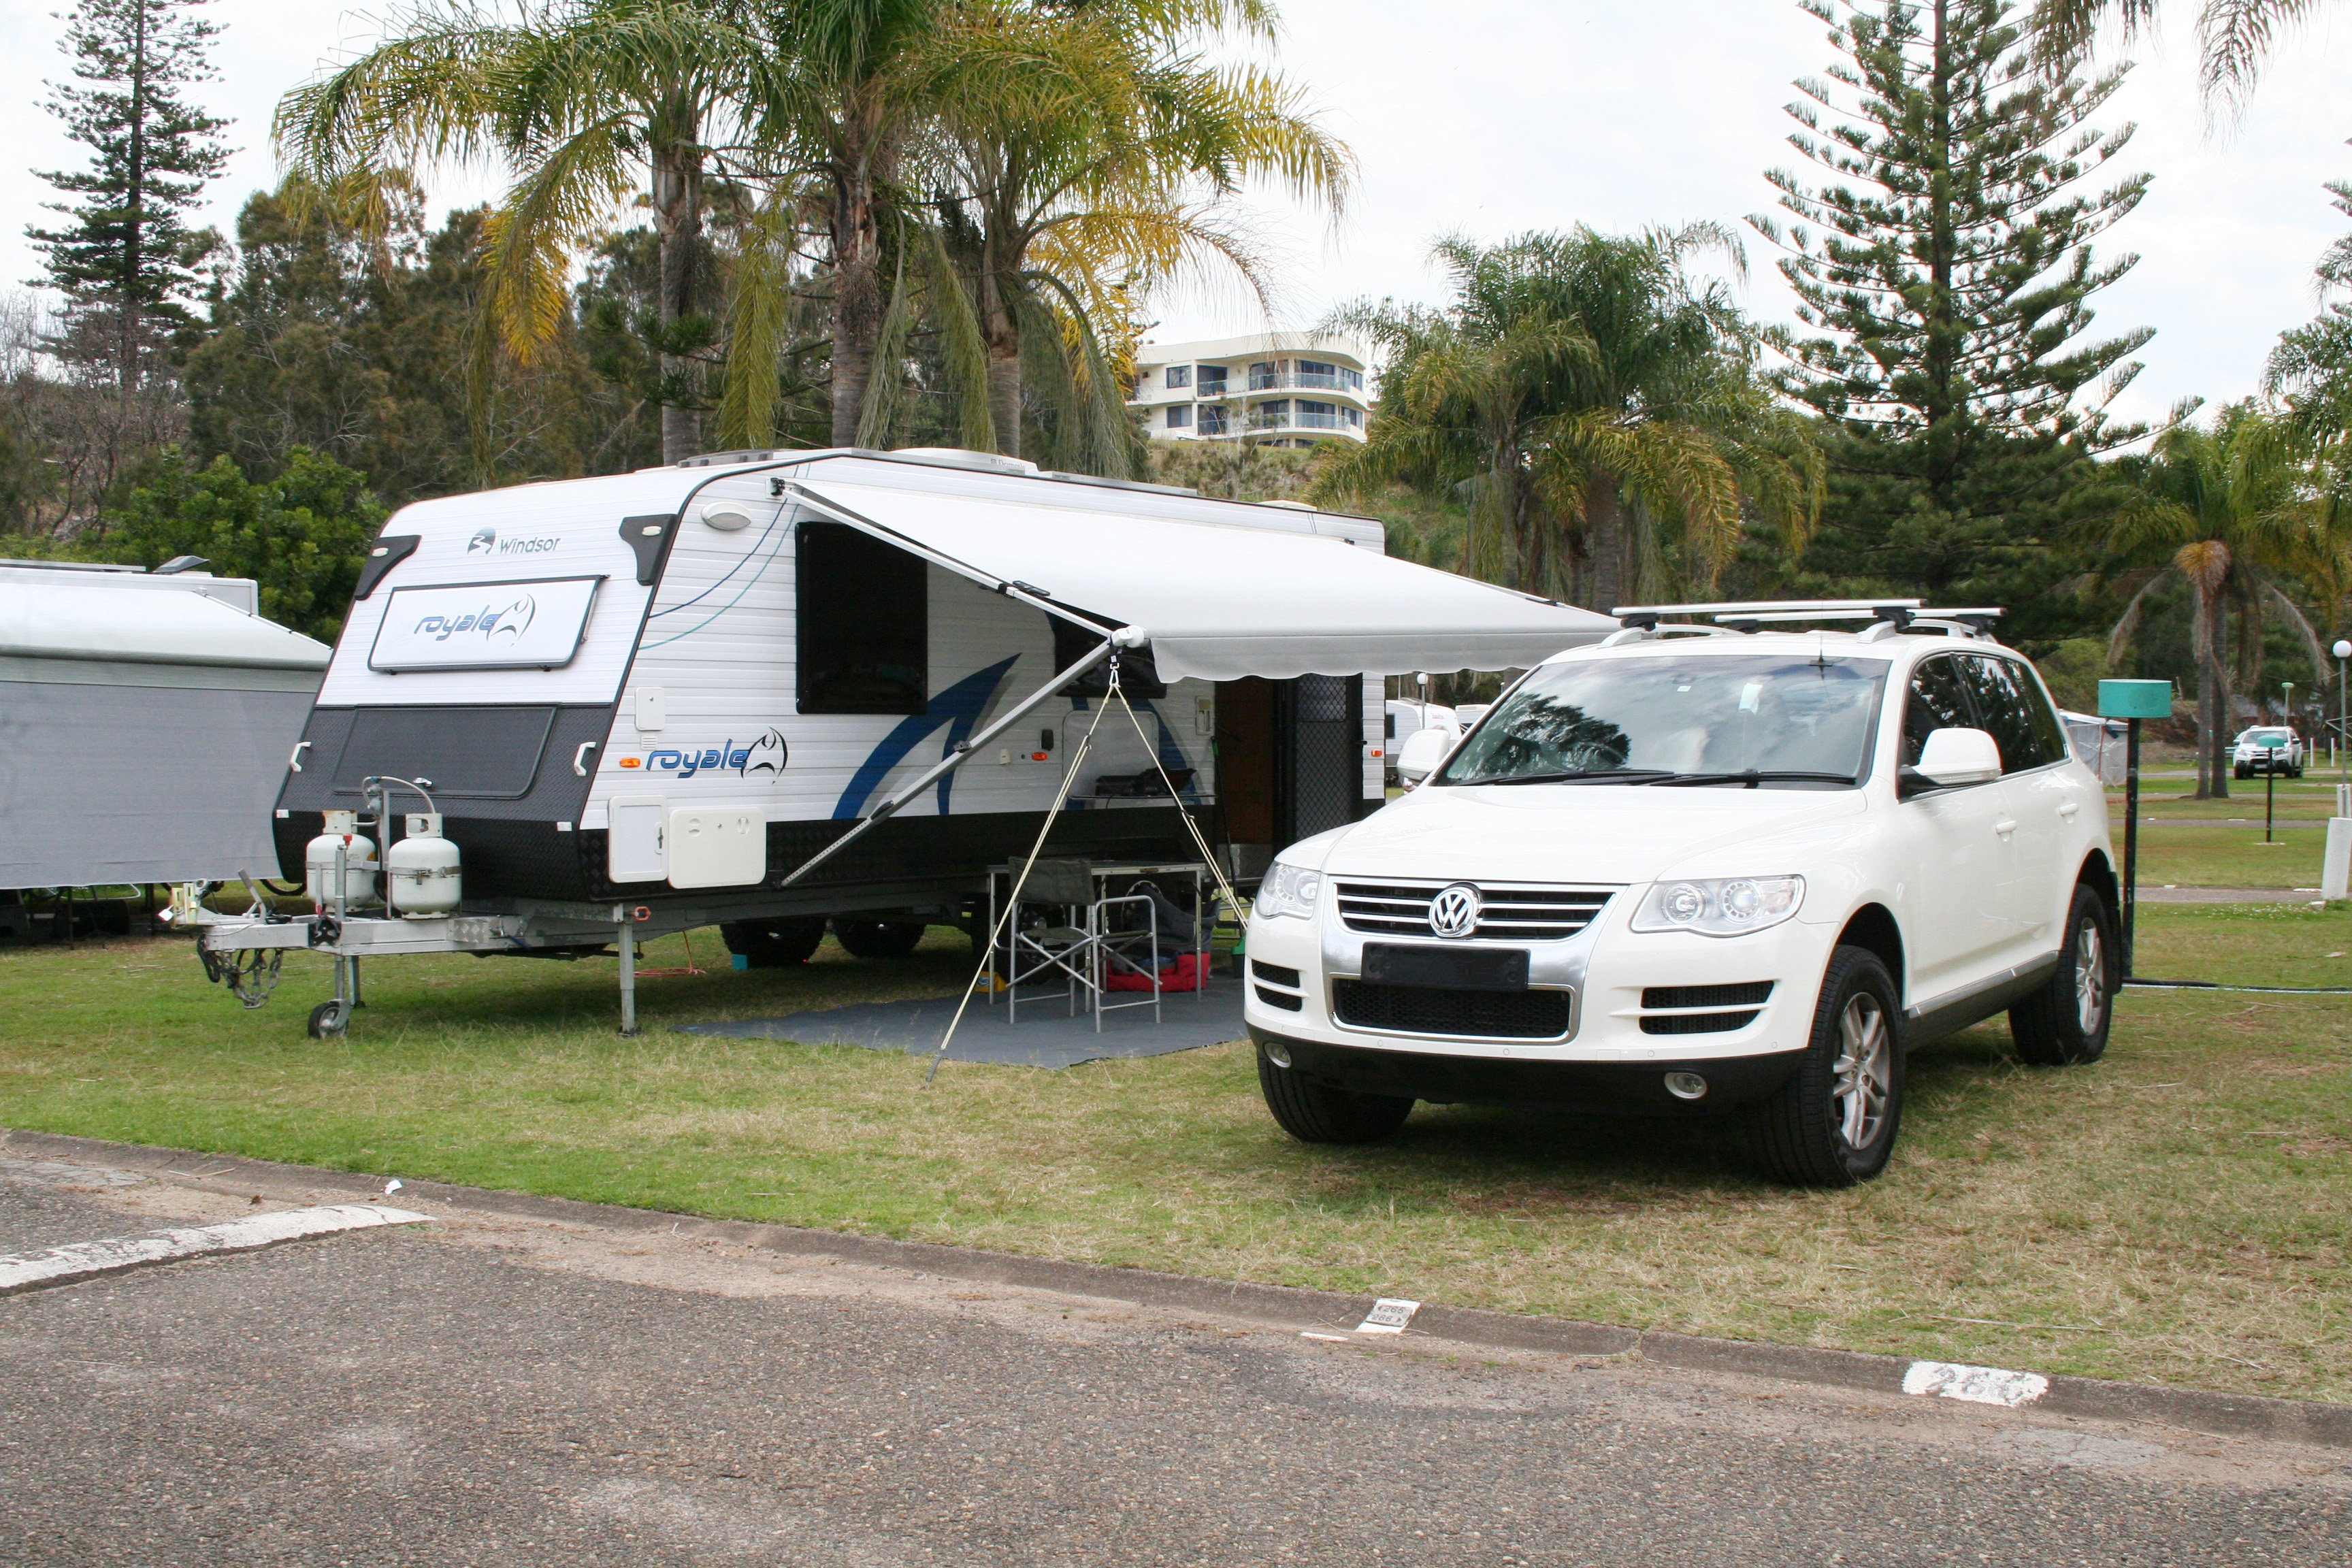 Port Macquarie Breakwall Holiday Park